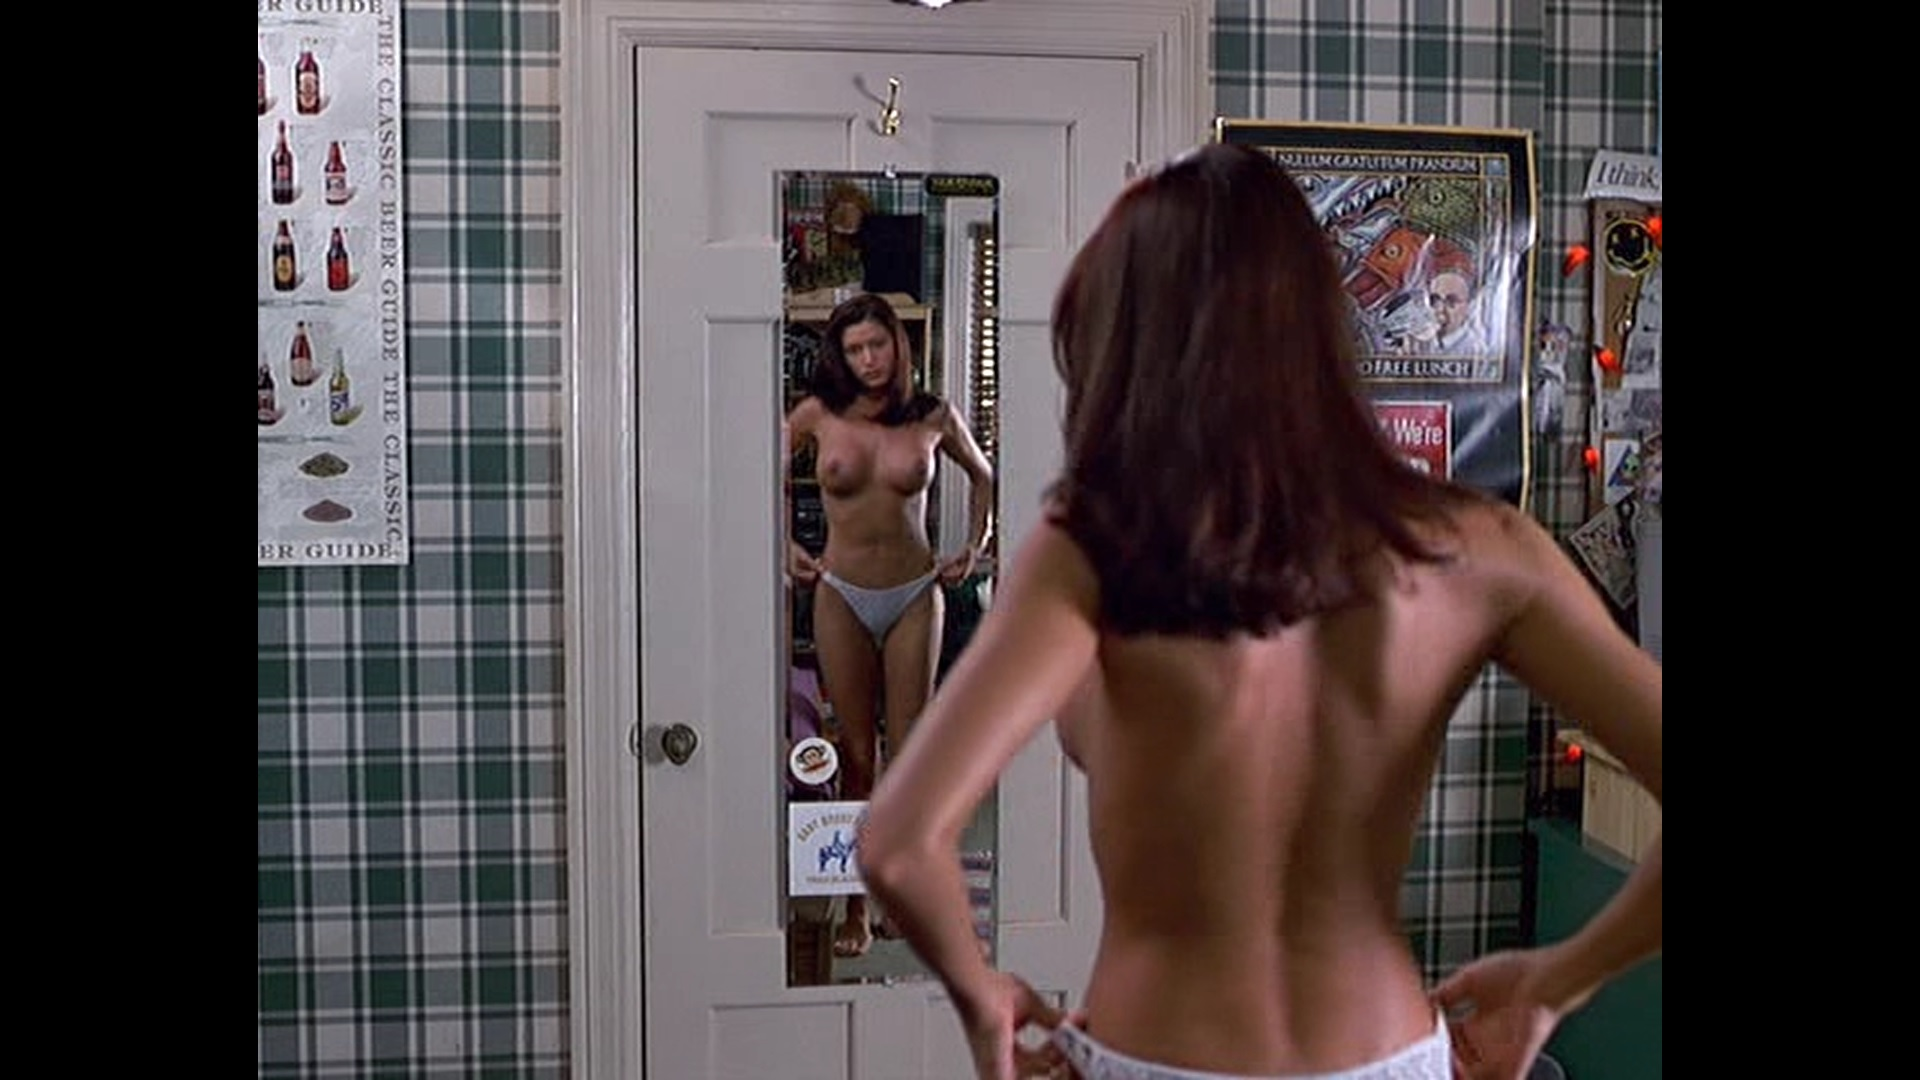 American Pie Uncensored Video shannon elizabeth nude boobs in american pie movie - free video